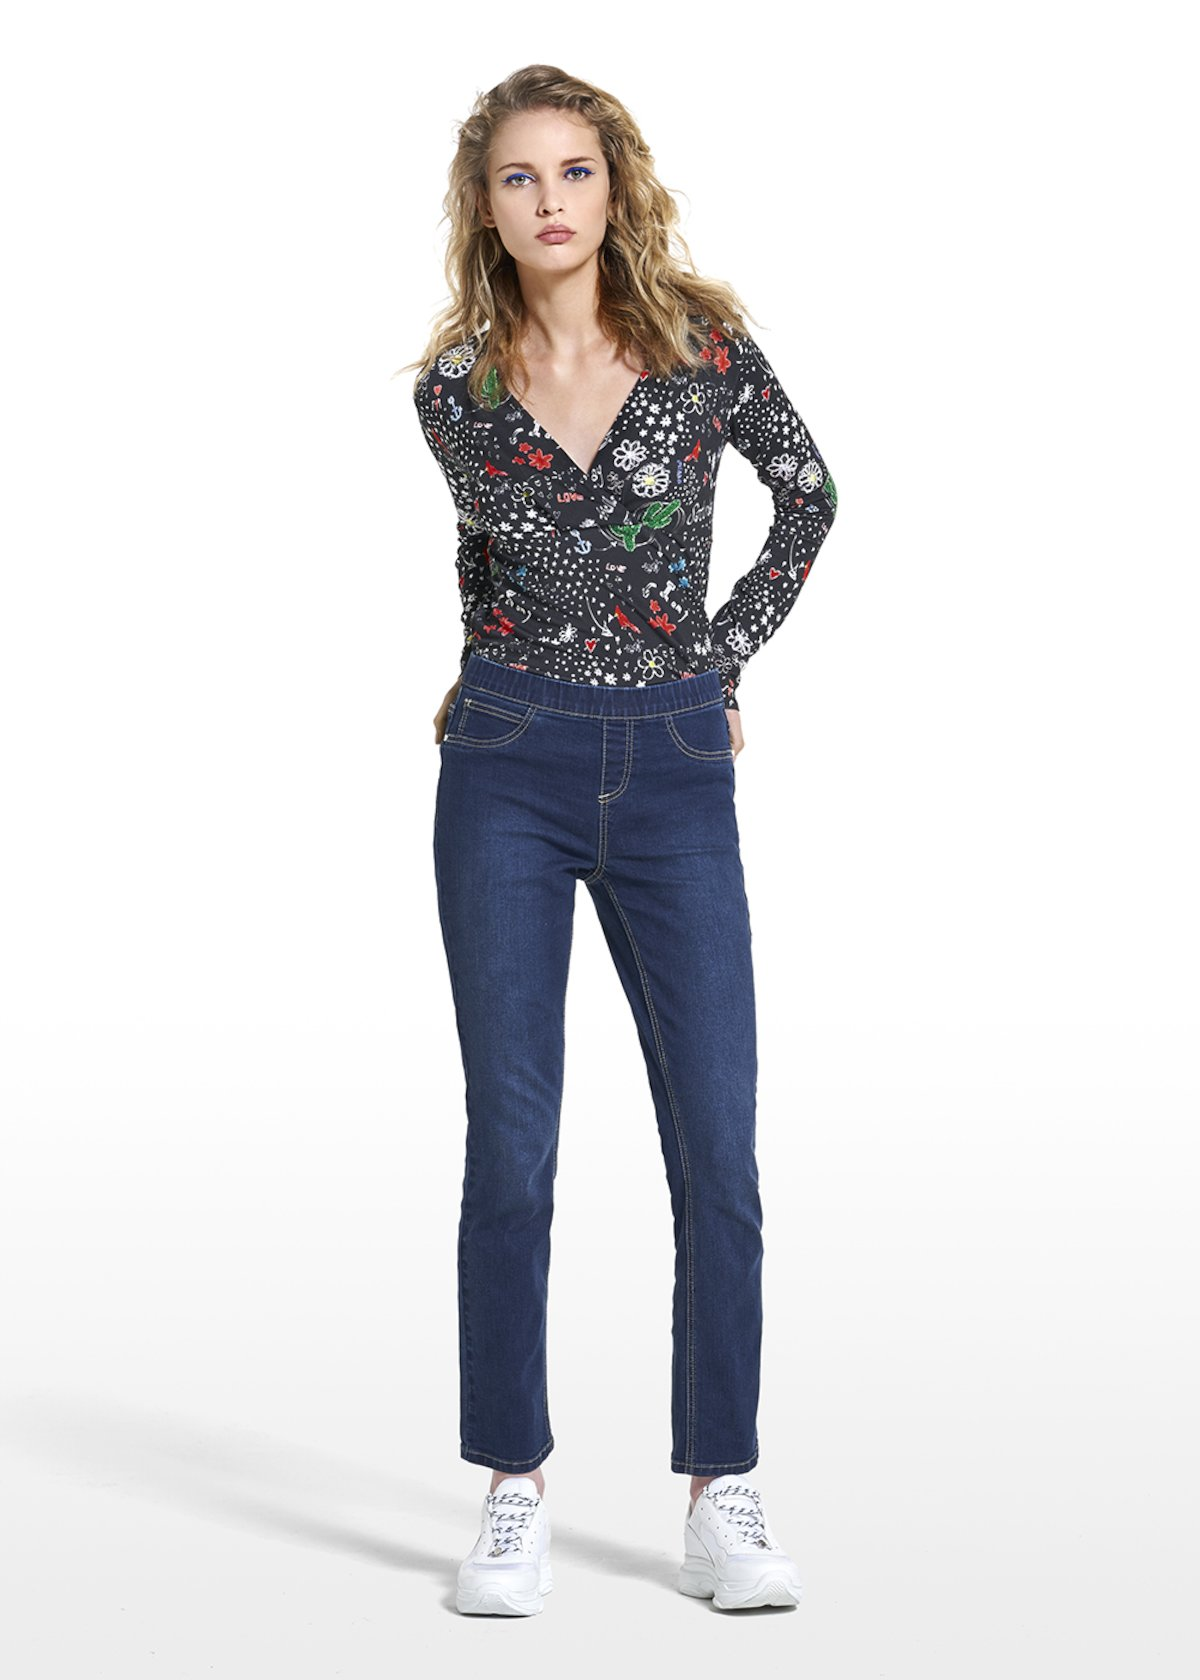 Jeggings Denis in denim con rivetti a forma di rose - Dark Denim - Donna - Immagine categoria